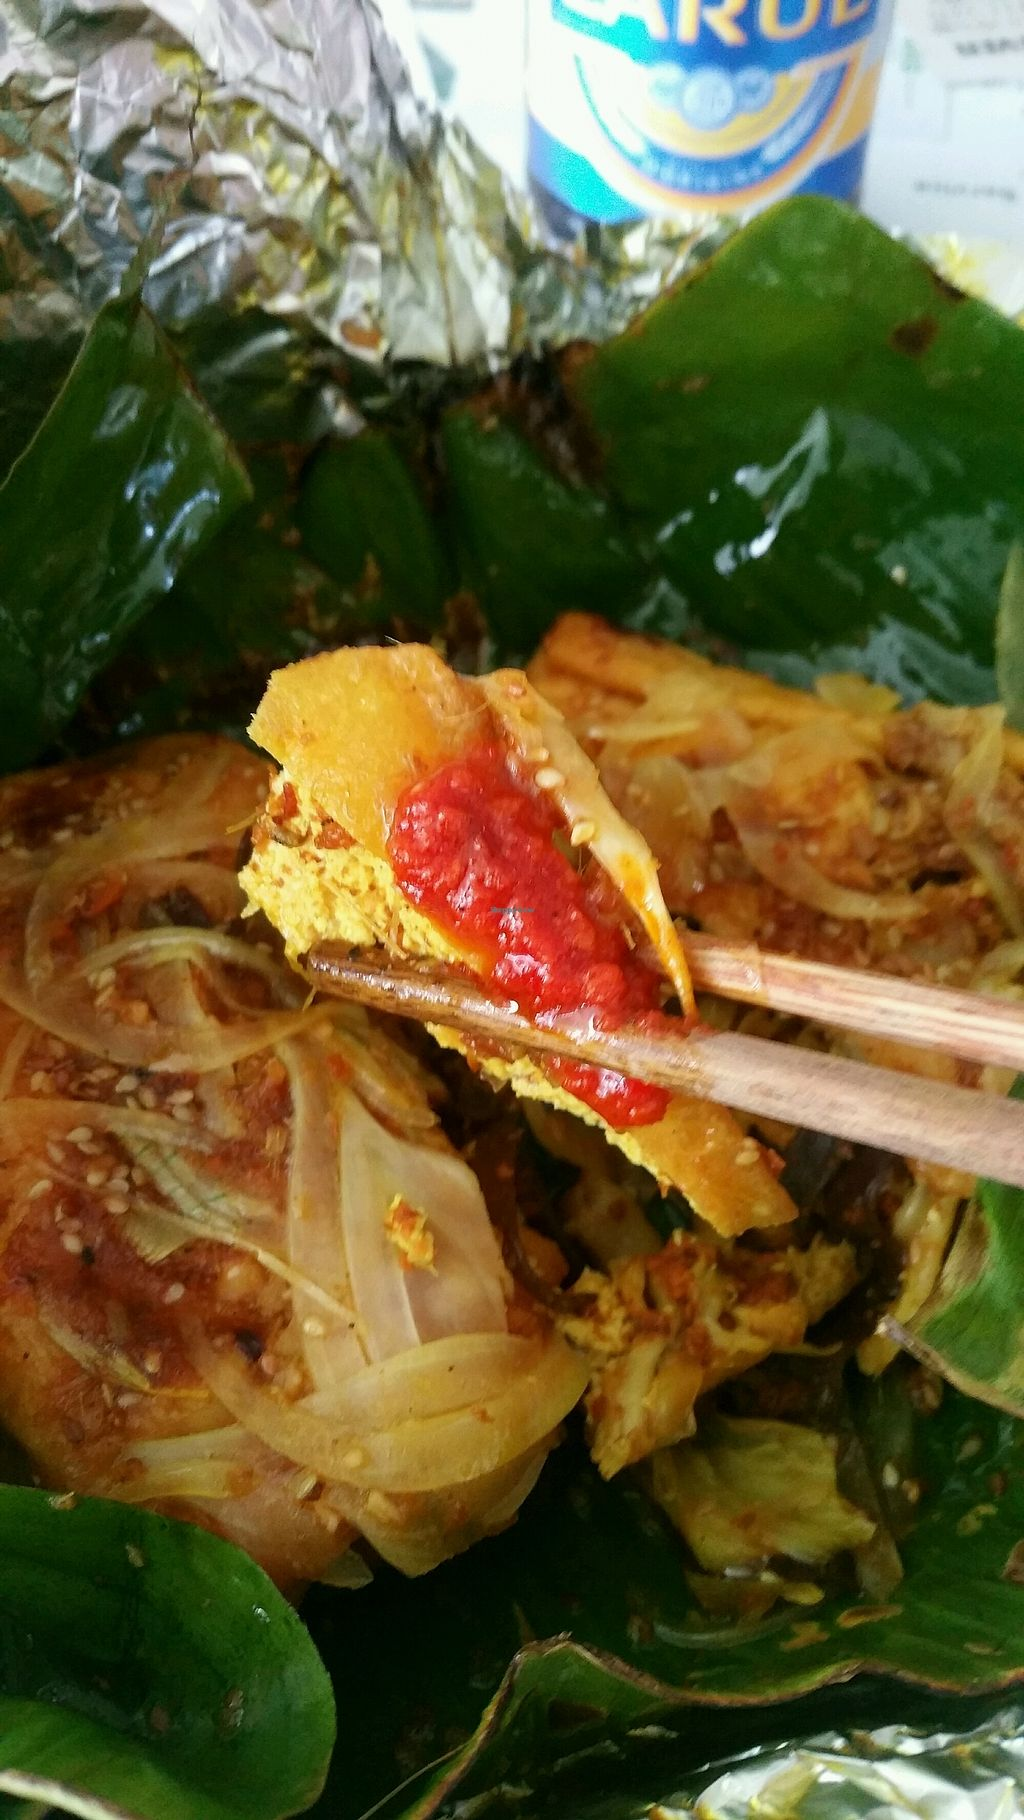 """Photo of Minh Hien Quan Chay  by <a href=""""/members/profile/EranCohen"""">EranCohen</a> <br/>Stuffed tofu w onion, mashrooms, garlic and curry rolled in banana leaf and steamed (have a bit of a sweet flavor)  <br/> April 1, 2018  - <a href='/contact/abuse/image/30597/379229'>Report</a>"""